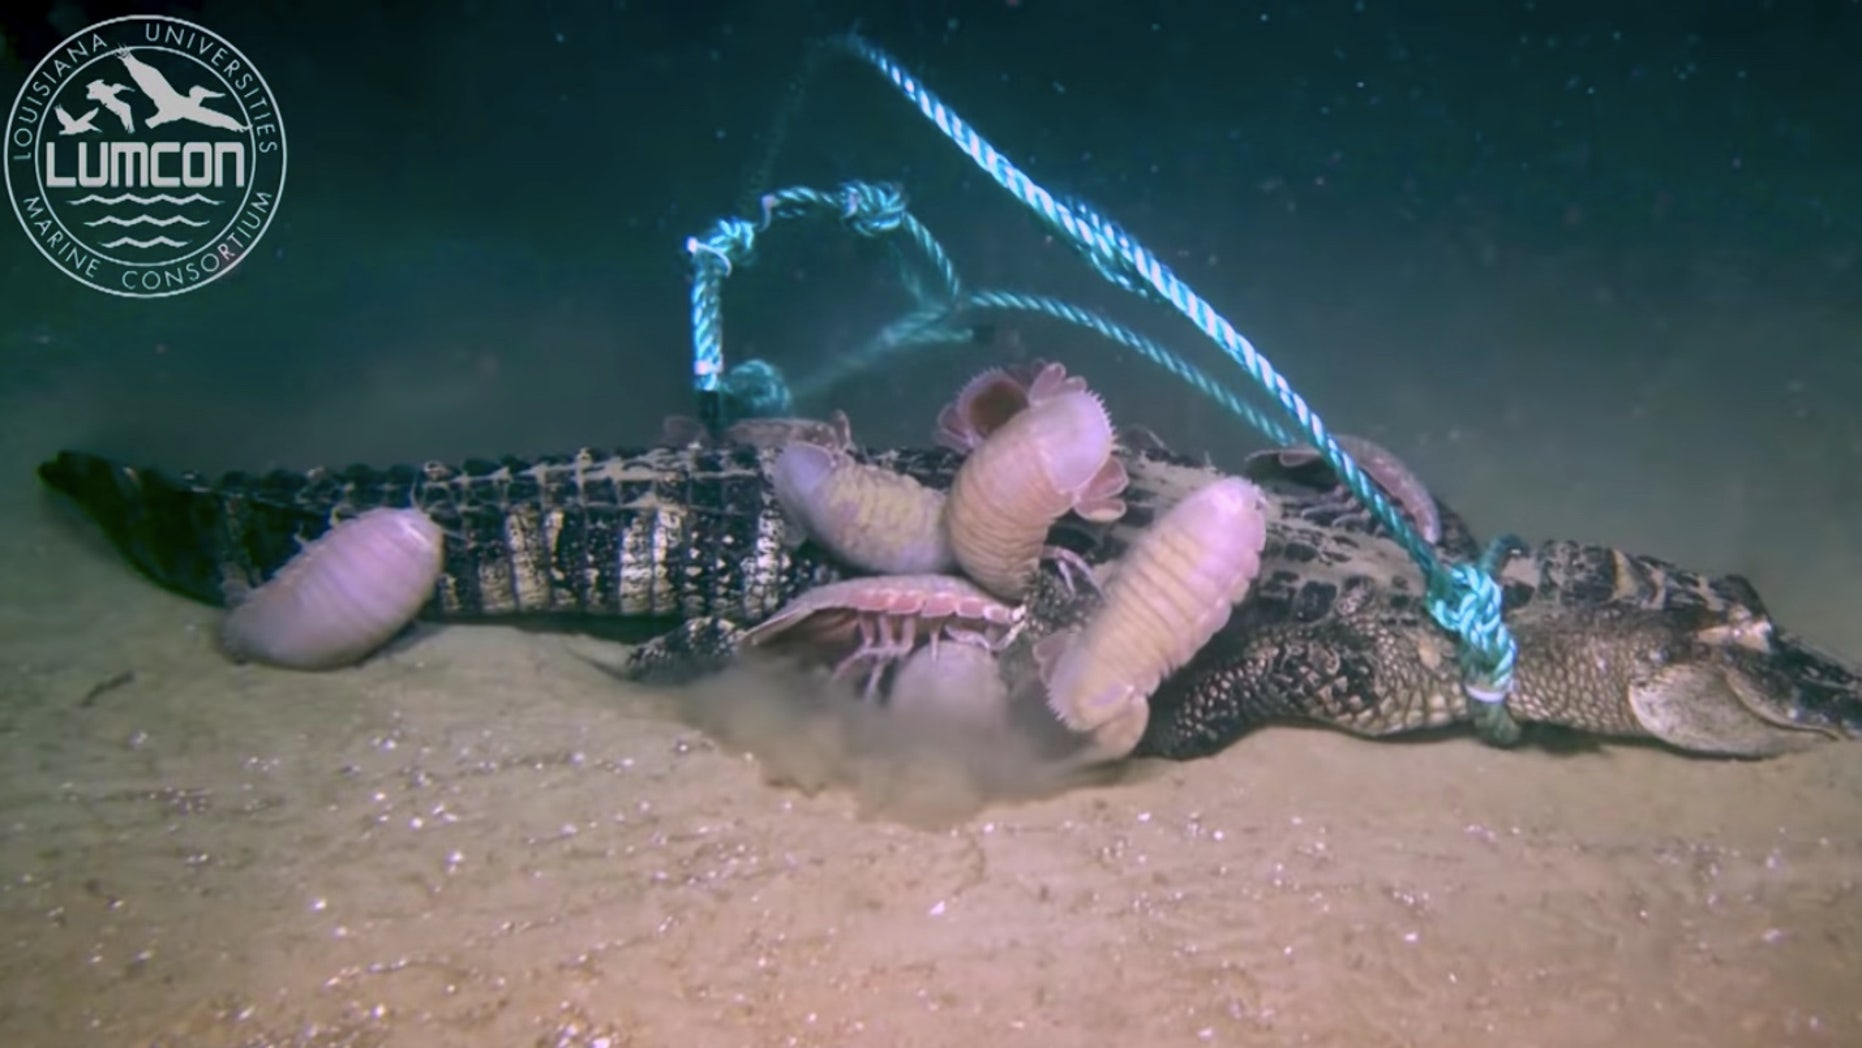 Westlake Legal Group alligator-giant-isopods Louisiana scientists drop dead alligator into sea, watch as it's devoured by giant 'pill bugs' Madeline Farber fox-news/us/us-regions/southeast/louisiana fox-news/science/wild-nature/reptiles fox-news/science/planet-earth/oceans fox-news/science fox news fnc/science fnc article 74e9134b-0410-571e-a74a-289c5433519b